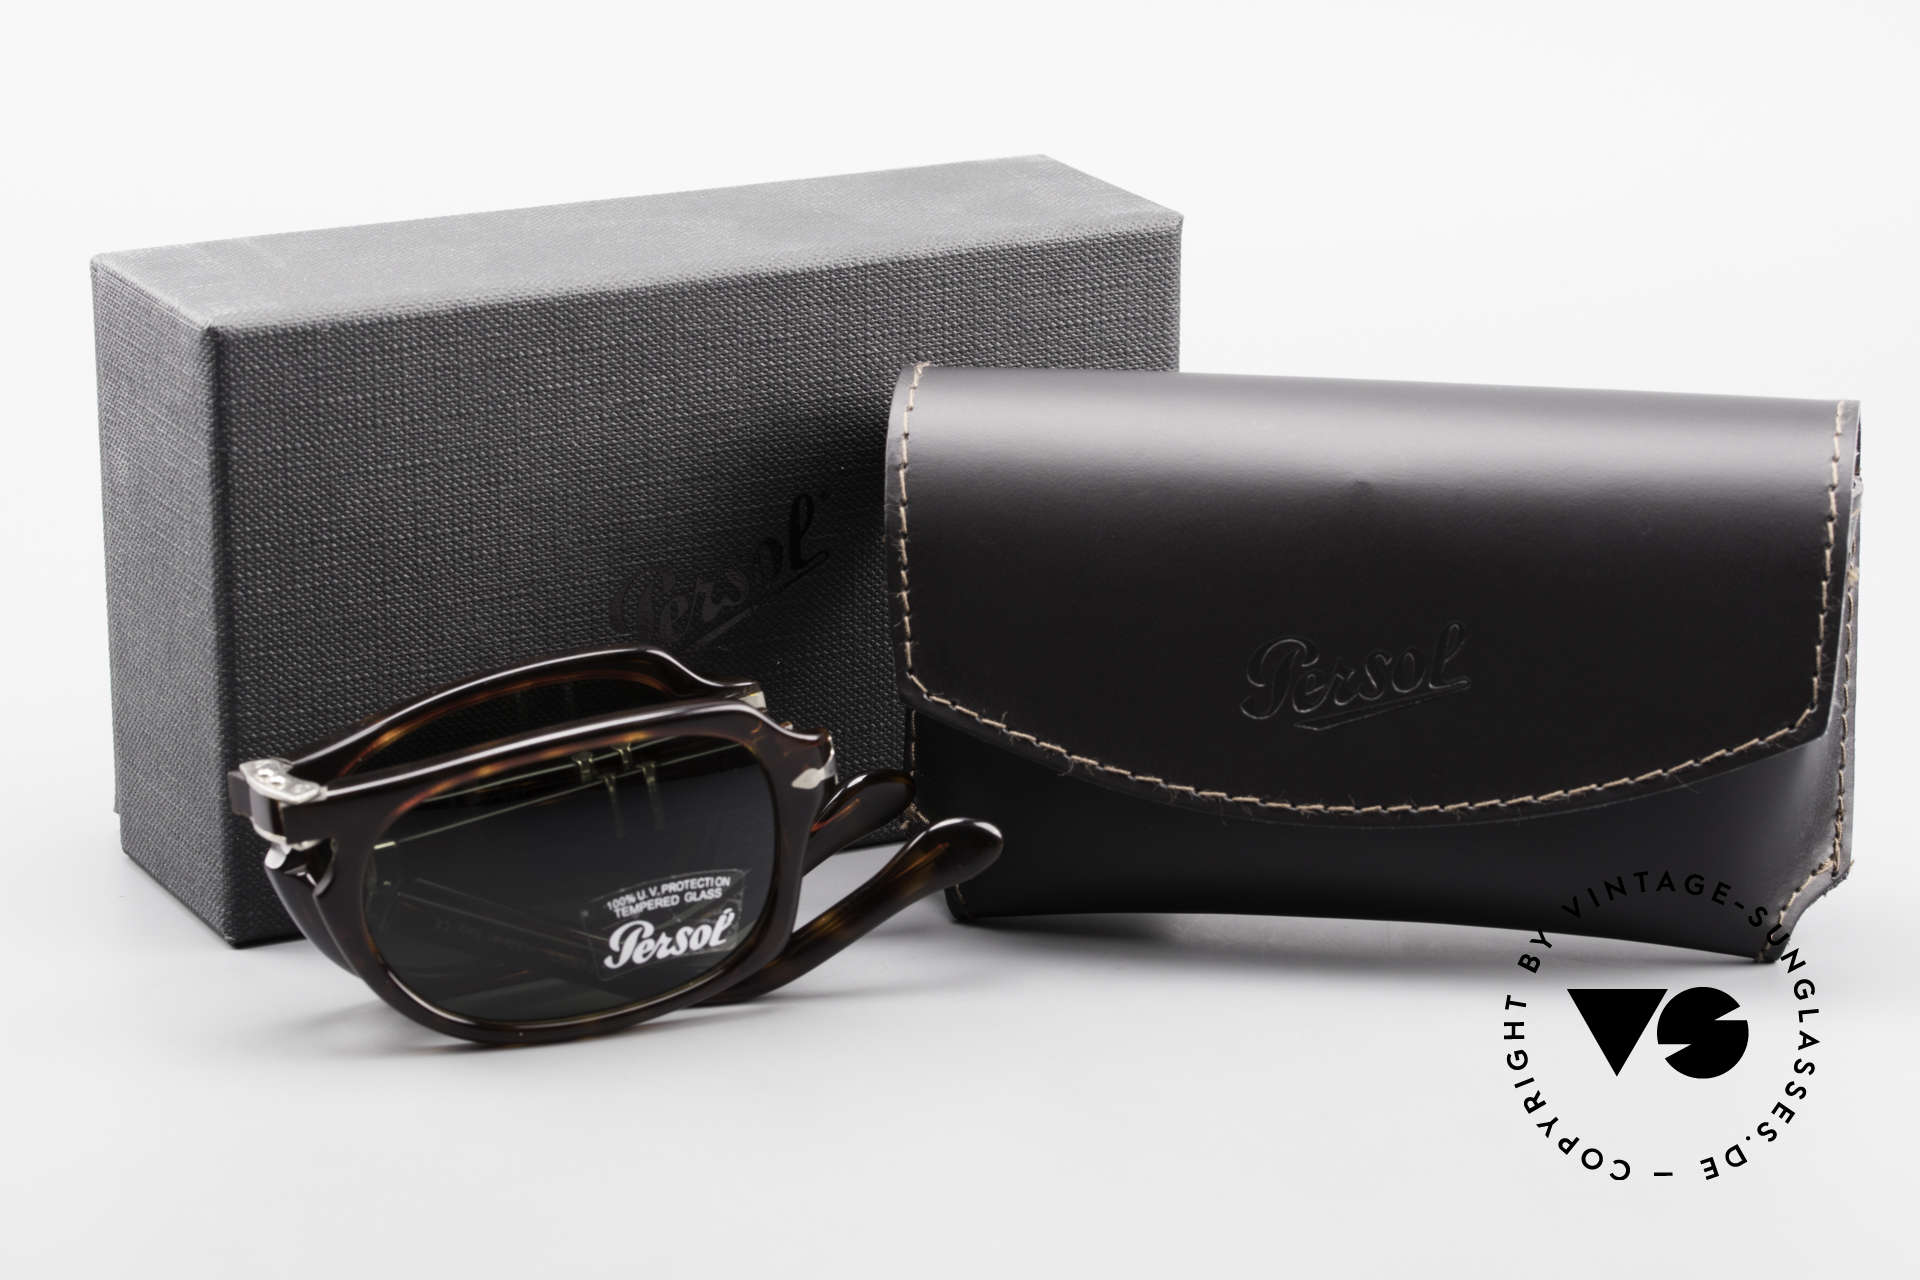 Persol 2621 Folding Foldable Sunglasses For Men, Size: medium, Made for Men